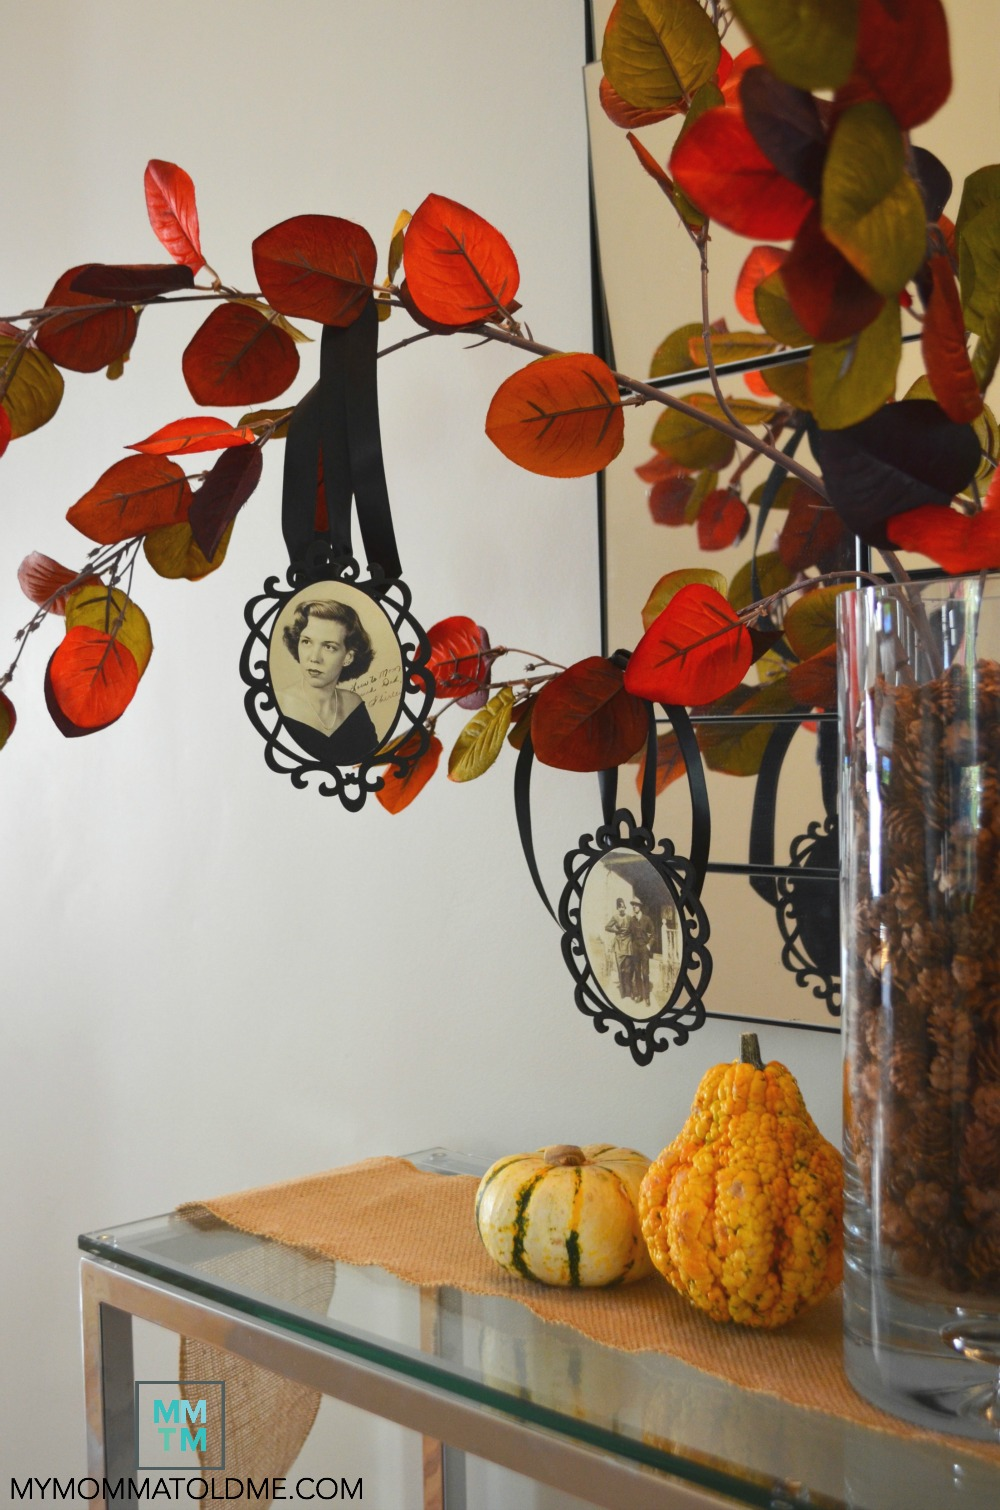 Thankful tree diy fall decor ideas dia de los muertos day of the deat family photo tree craft tutorial